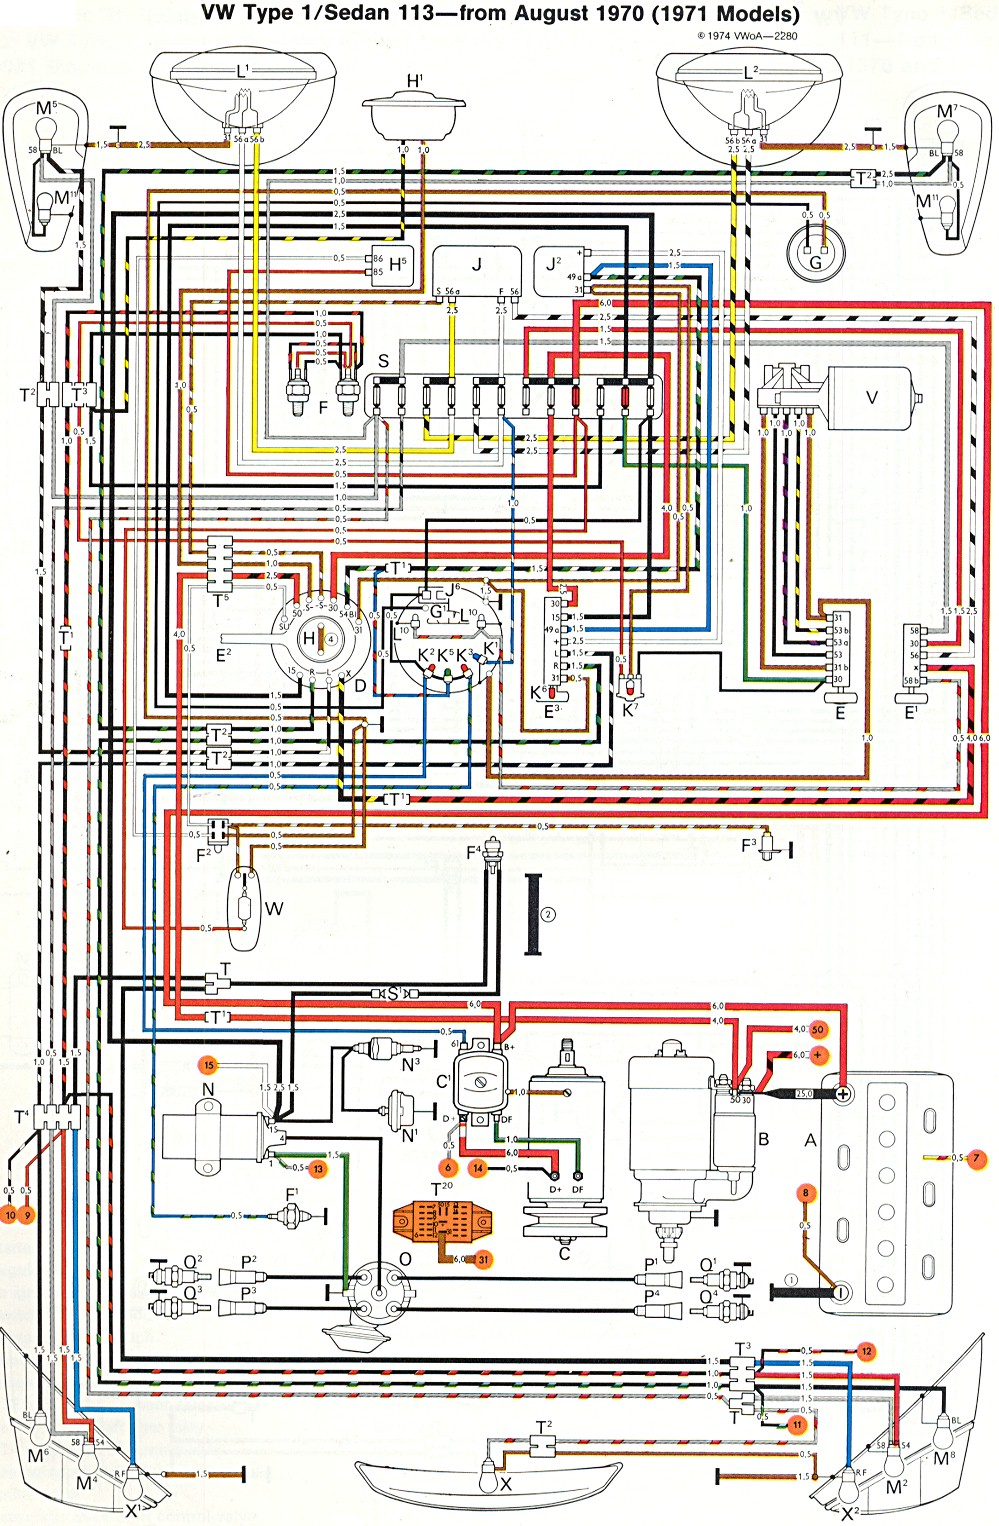 vw beetle wiring diagram 1974 1973 vw beetle wiring diagram VW Bug Wire Harness vw bug wiring schematic